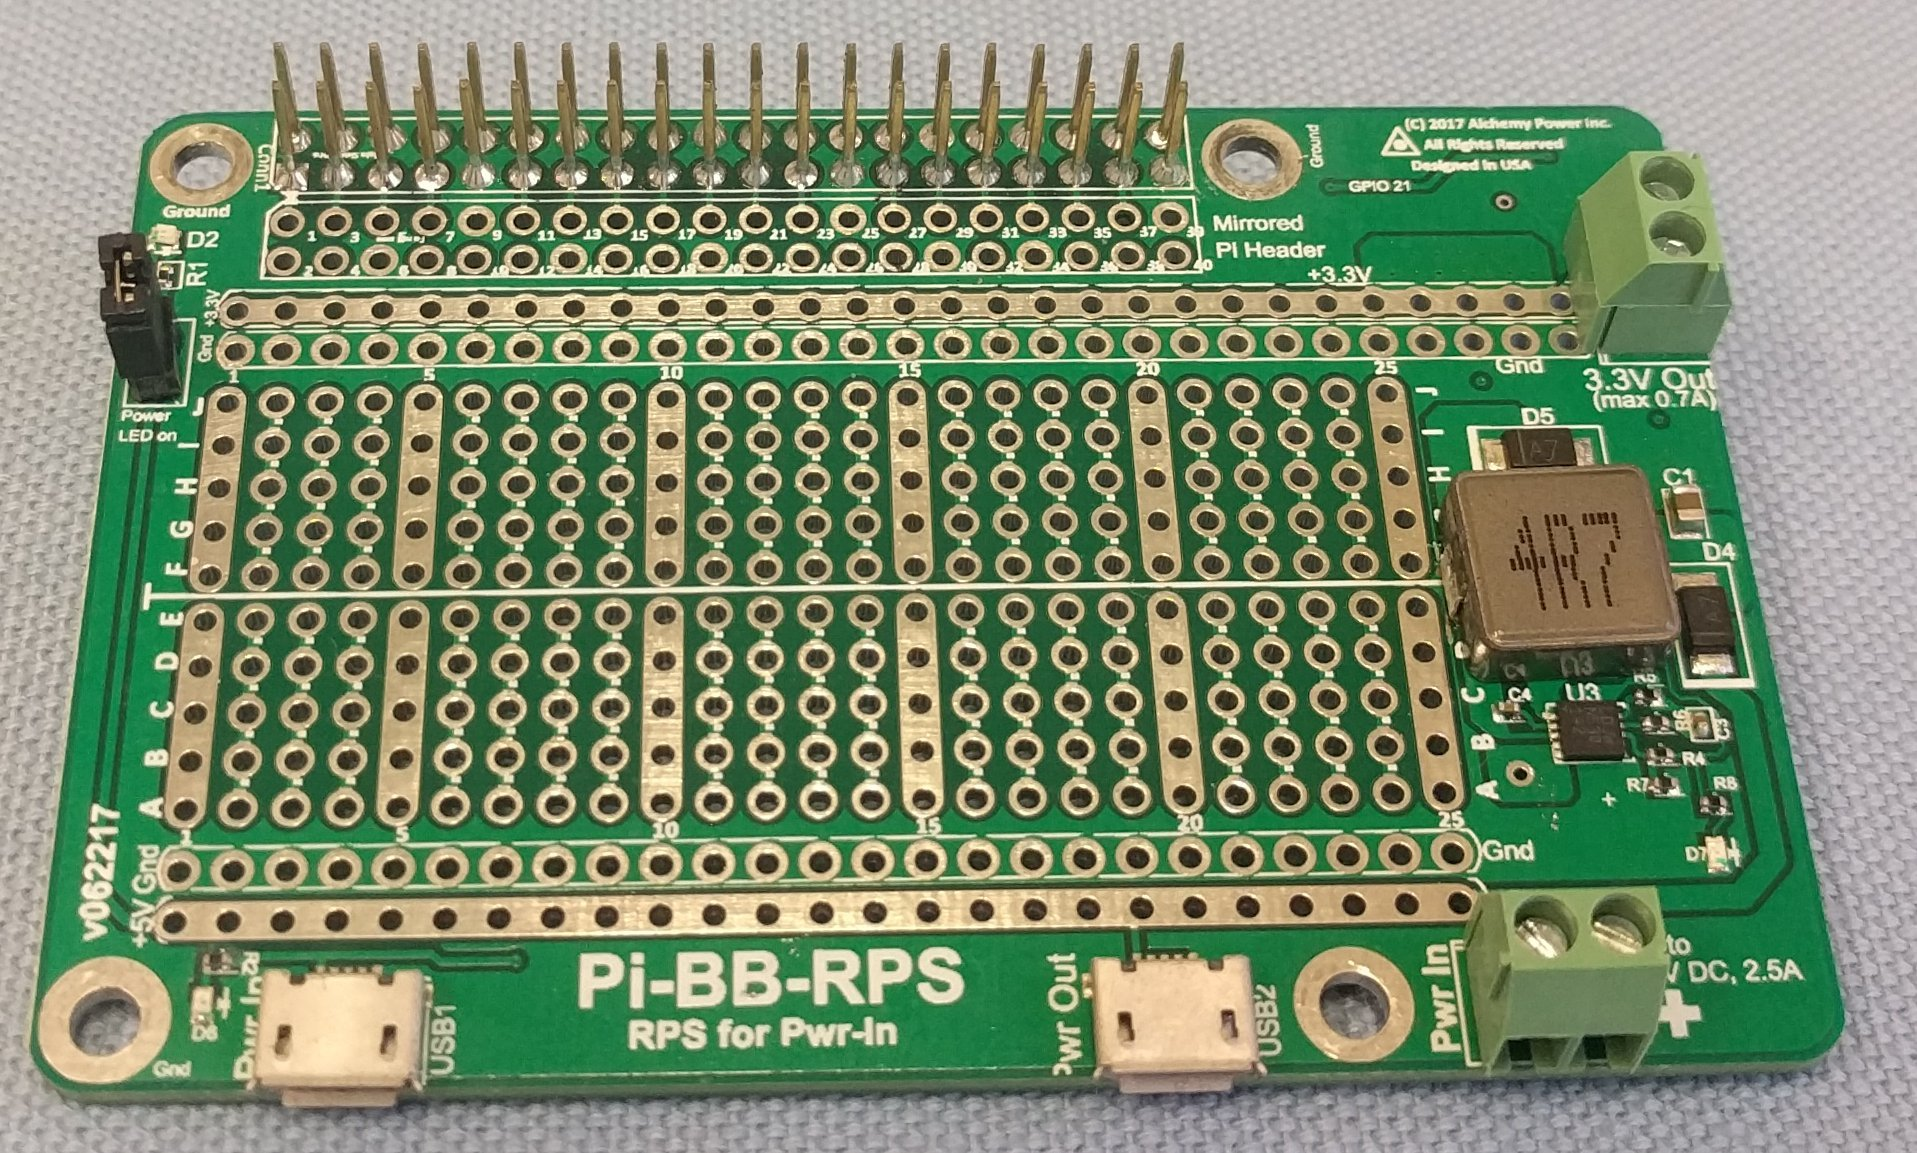 Alchemy Power Inc. Pi-BB-RPS Powered Breadboard with Redundant Power Supply (RPS) and more... by Alchemy Power Inc. TM (Image #1)